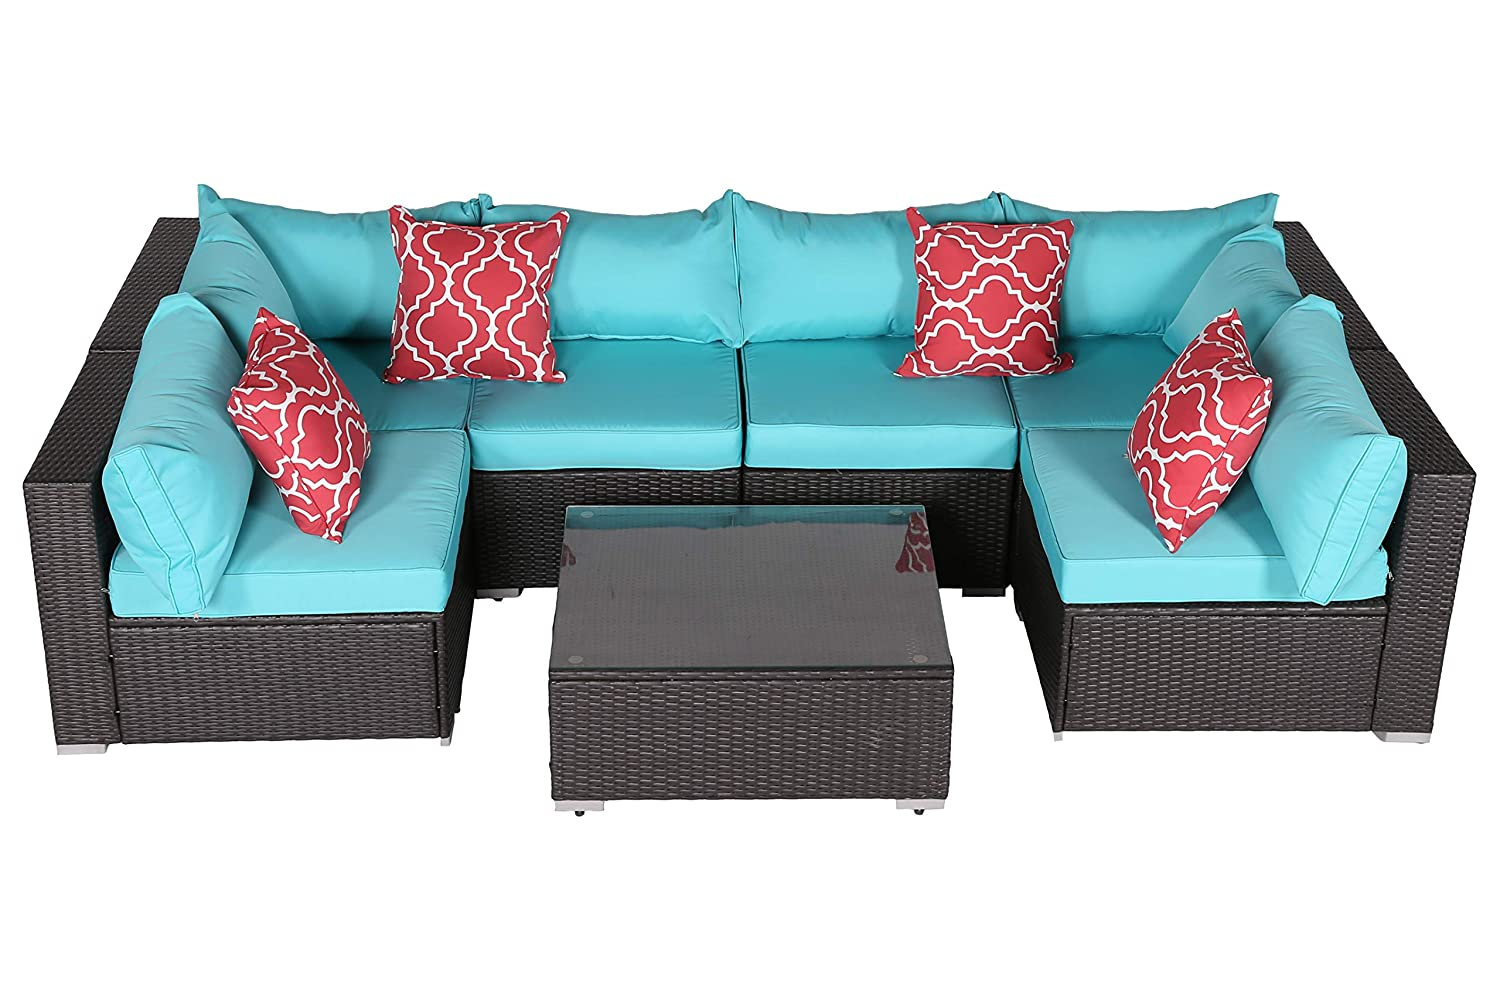 Do4U Patio Sofa 7-Piece Set Outdoor Furniture Sectional All-Weather Wicker Rattan Sofa Turquoise Seat & Back Cushions, Garden Lawn Pool Backyard Outdoor Sofa Wicker Conversation Set (7555-Turquoise)